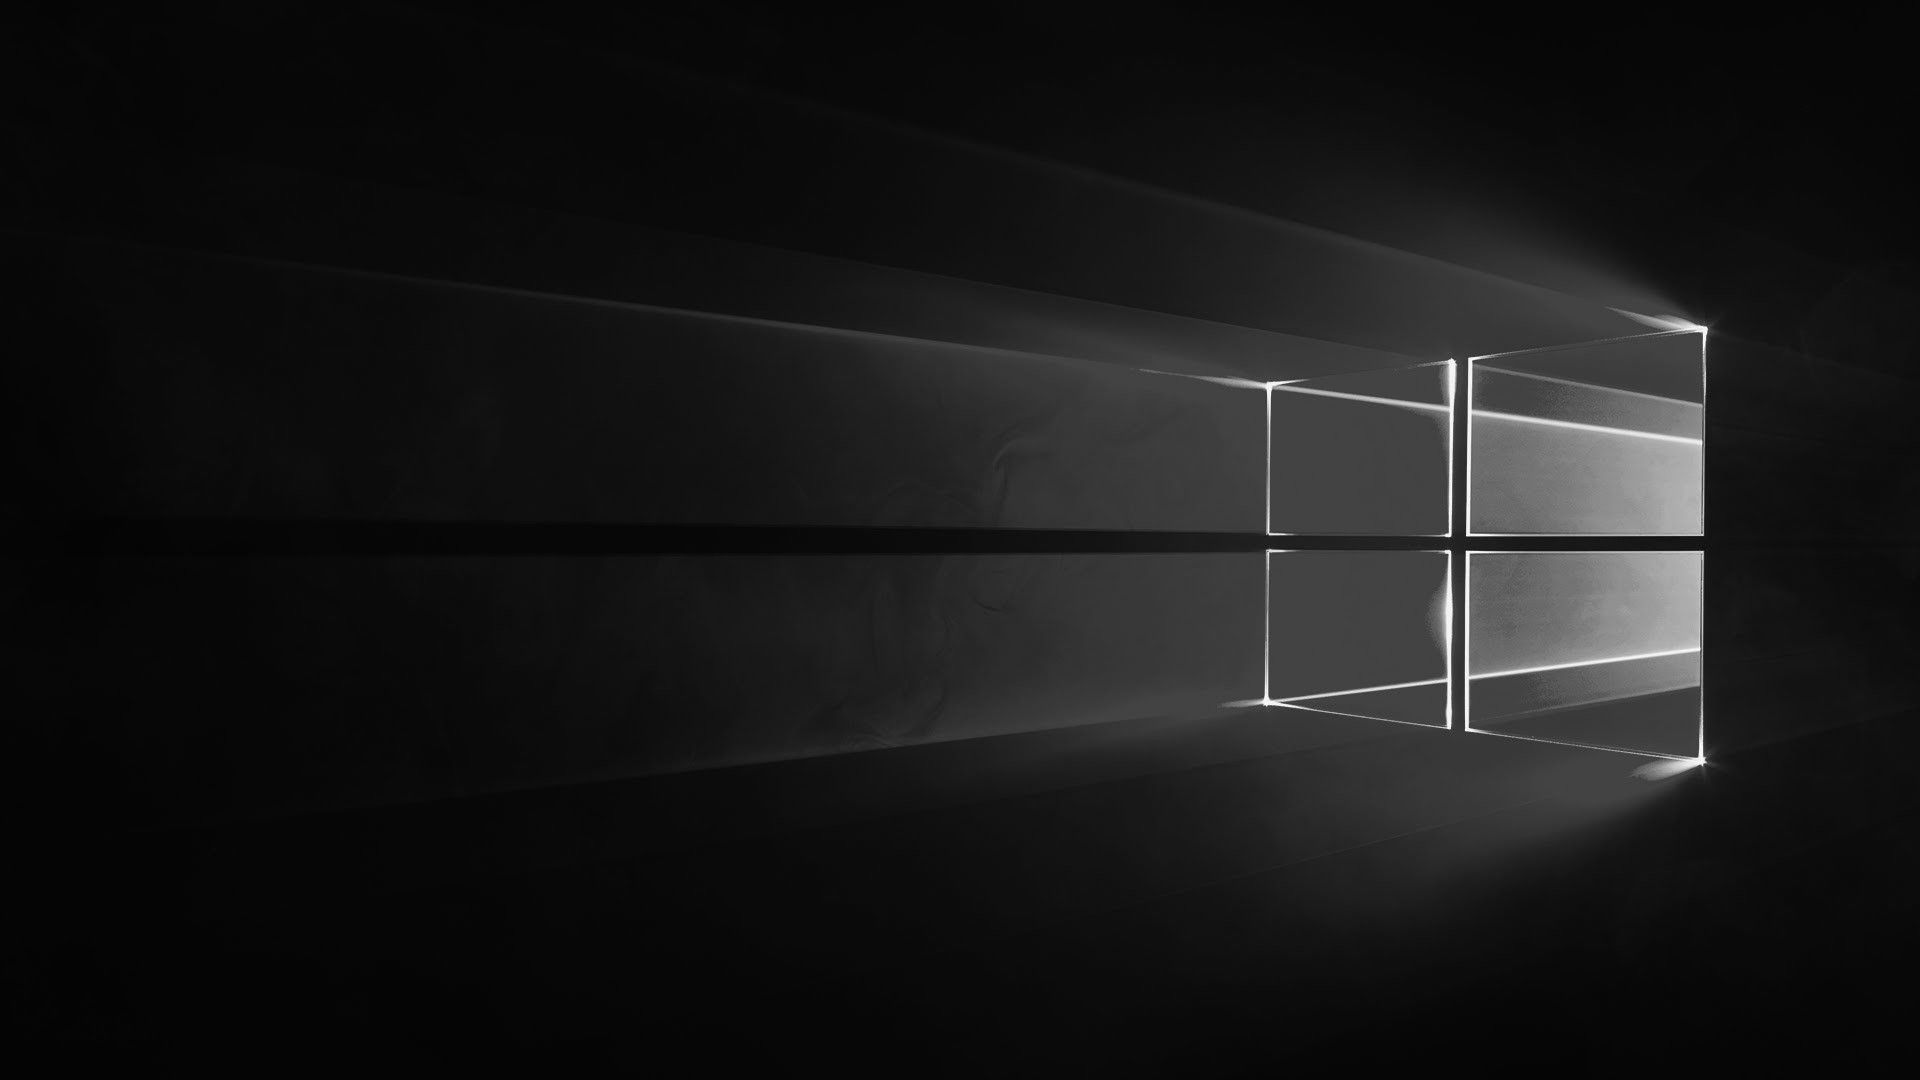 Black Windows 10 HD Wallpapers - Top Free Black Windows 10 HD